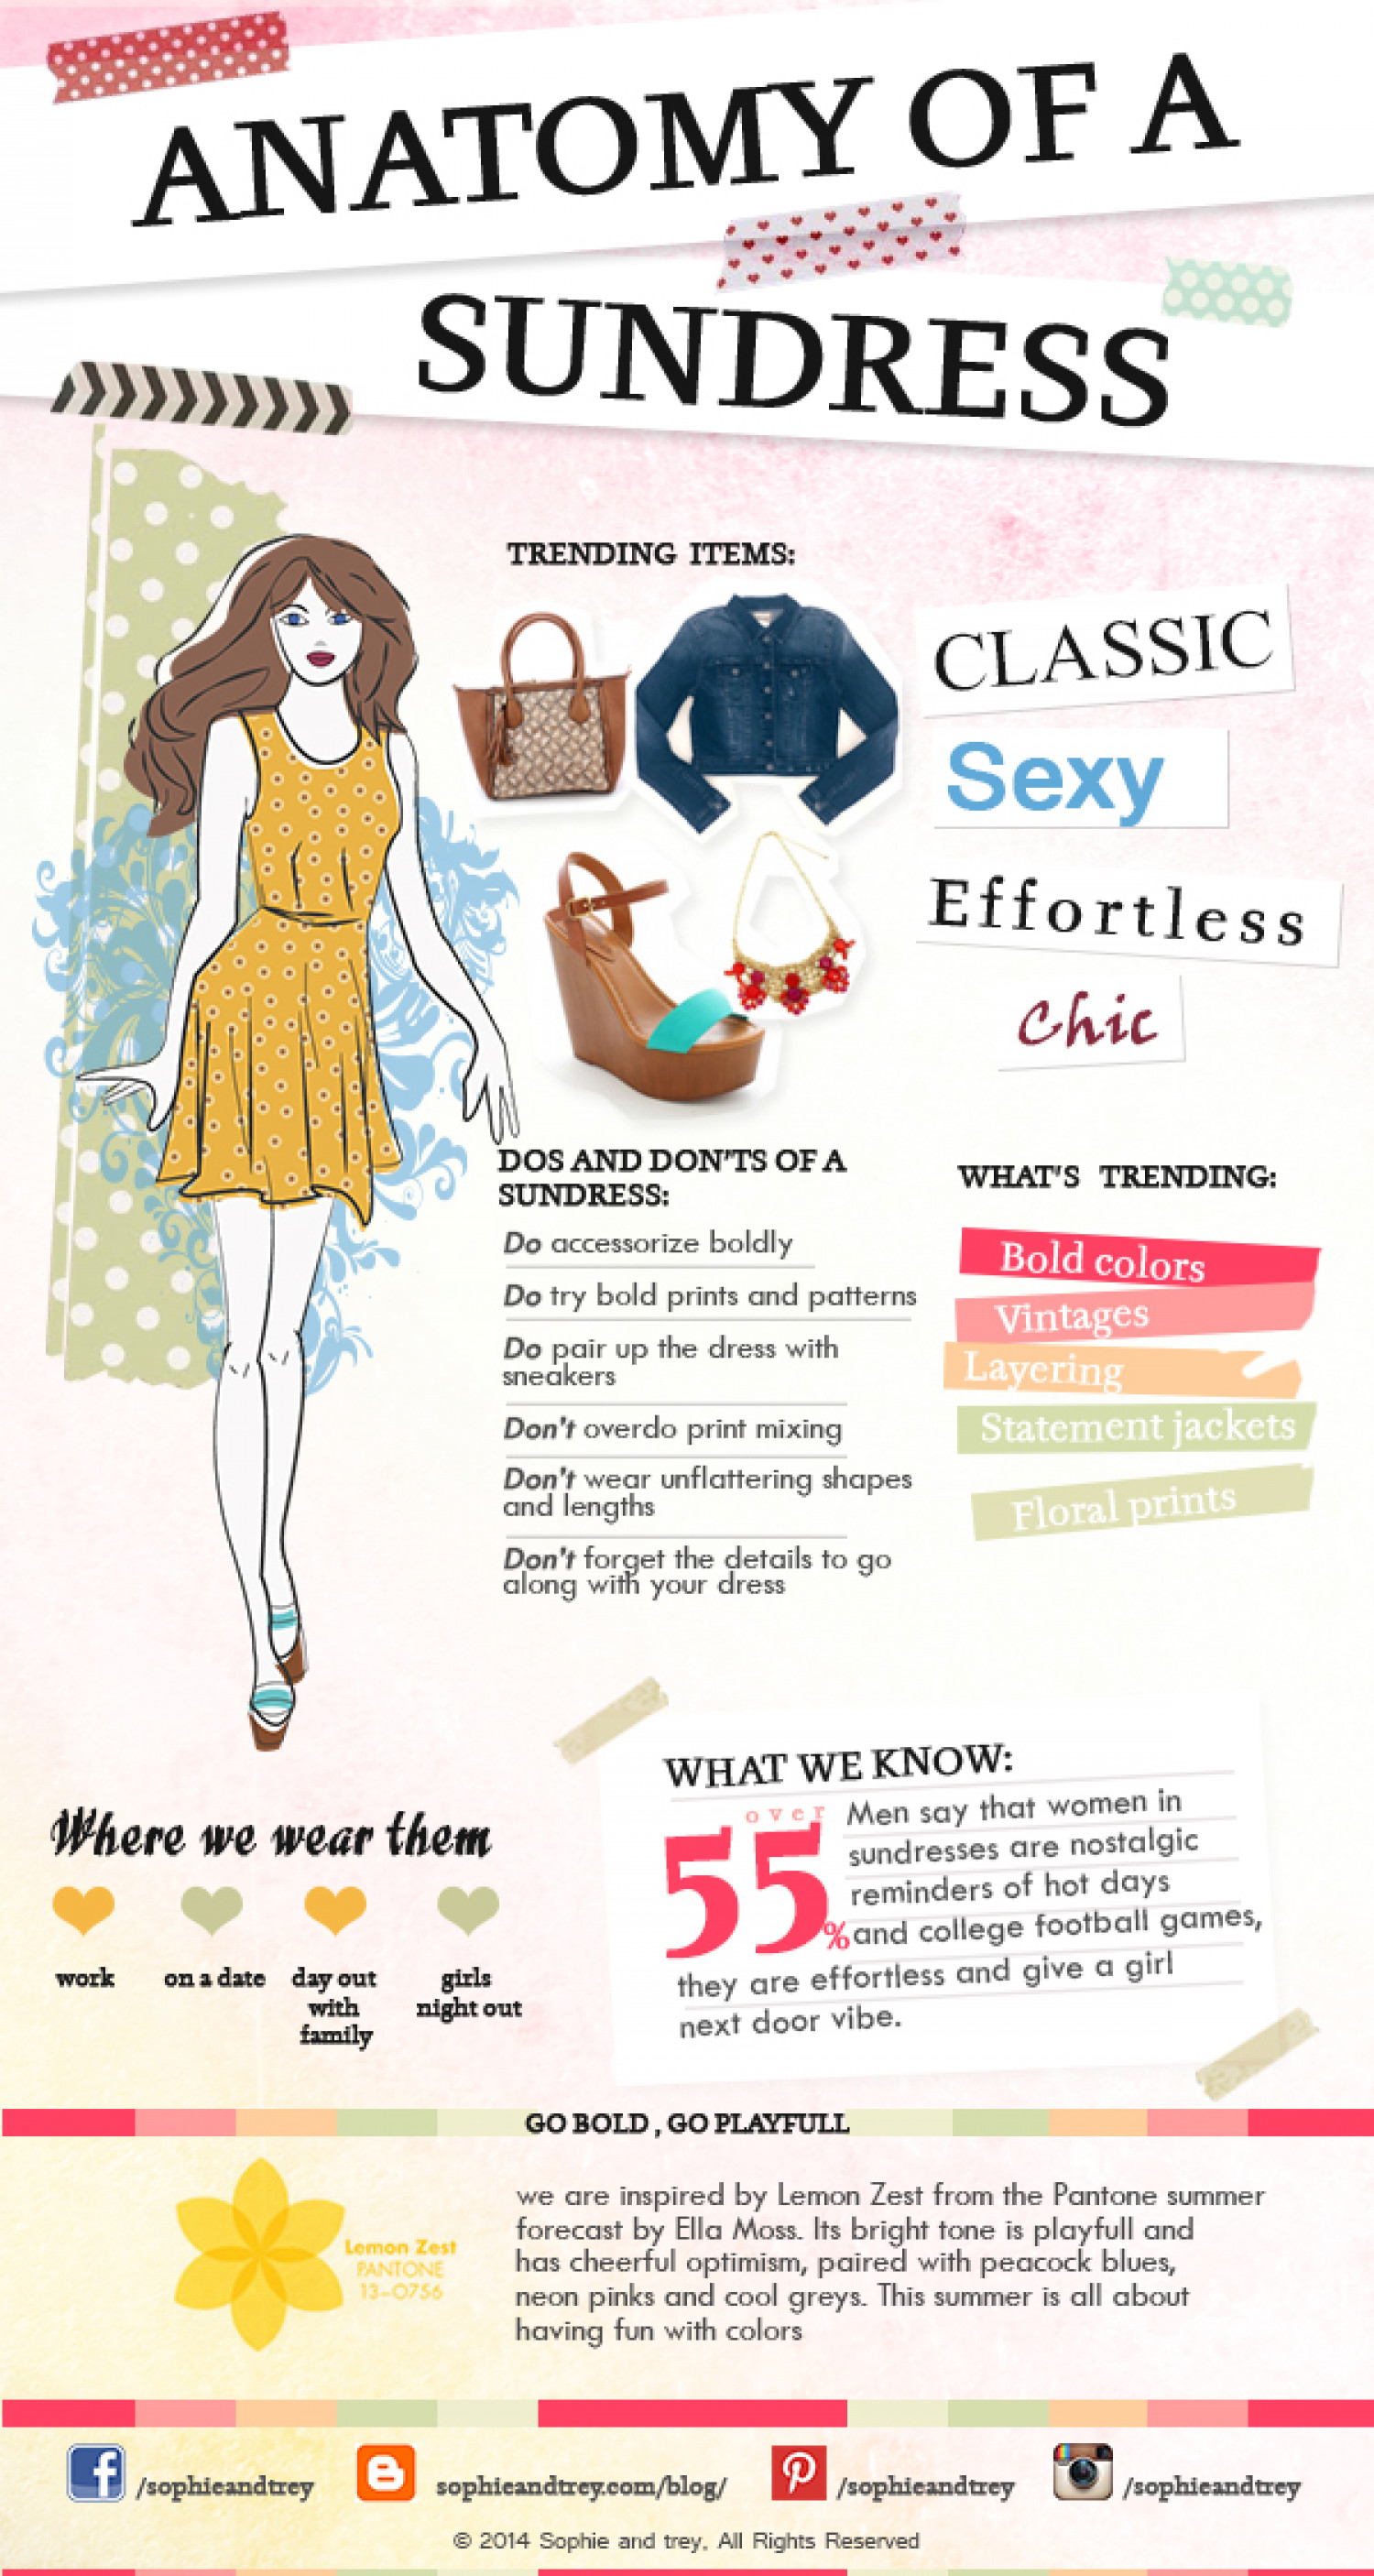 Anatomy of a Sundress Infographic